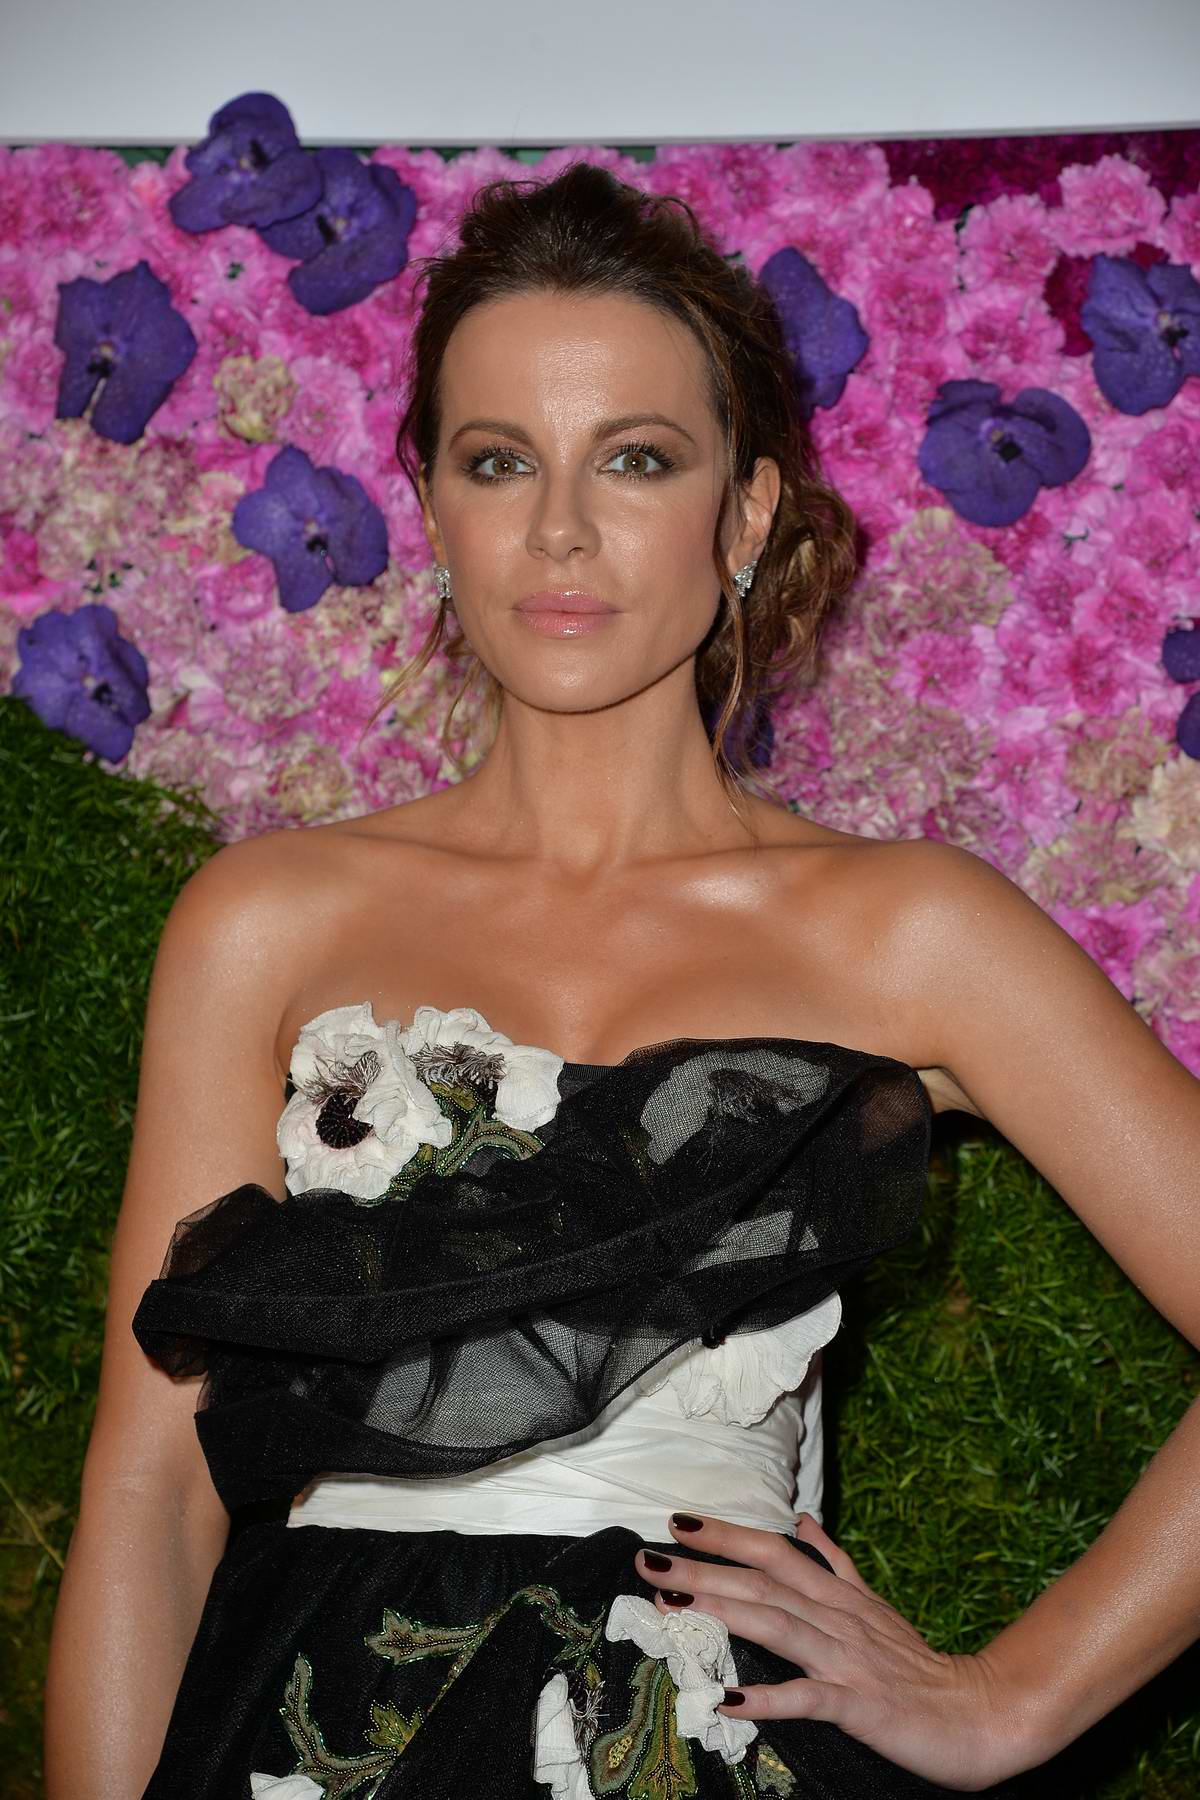 Kate Beckinsale attends Tea Party After Dark event in New York City